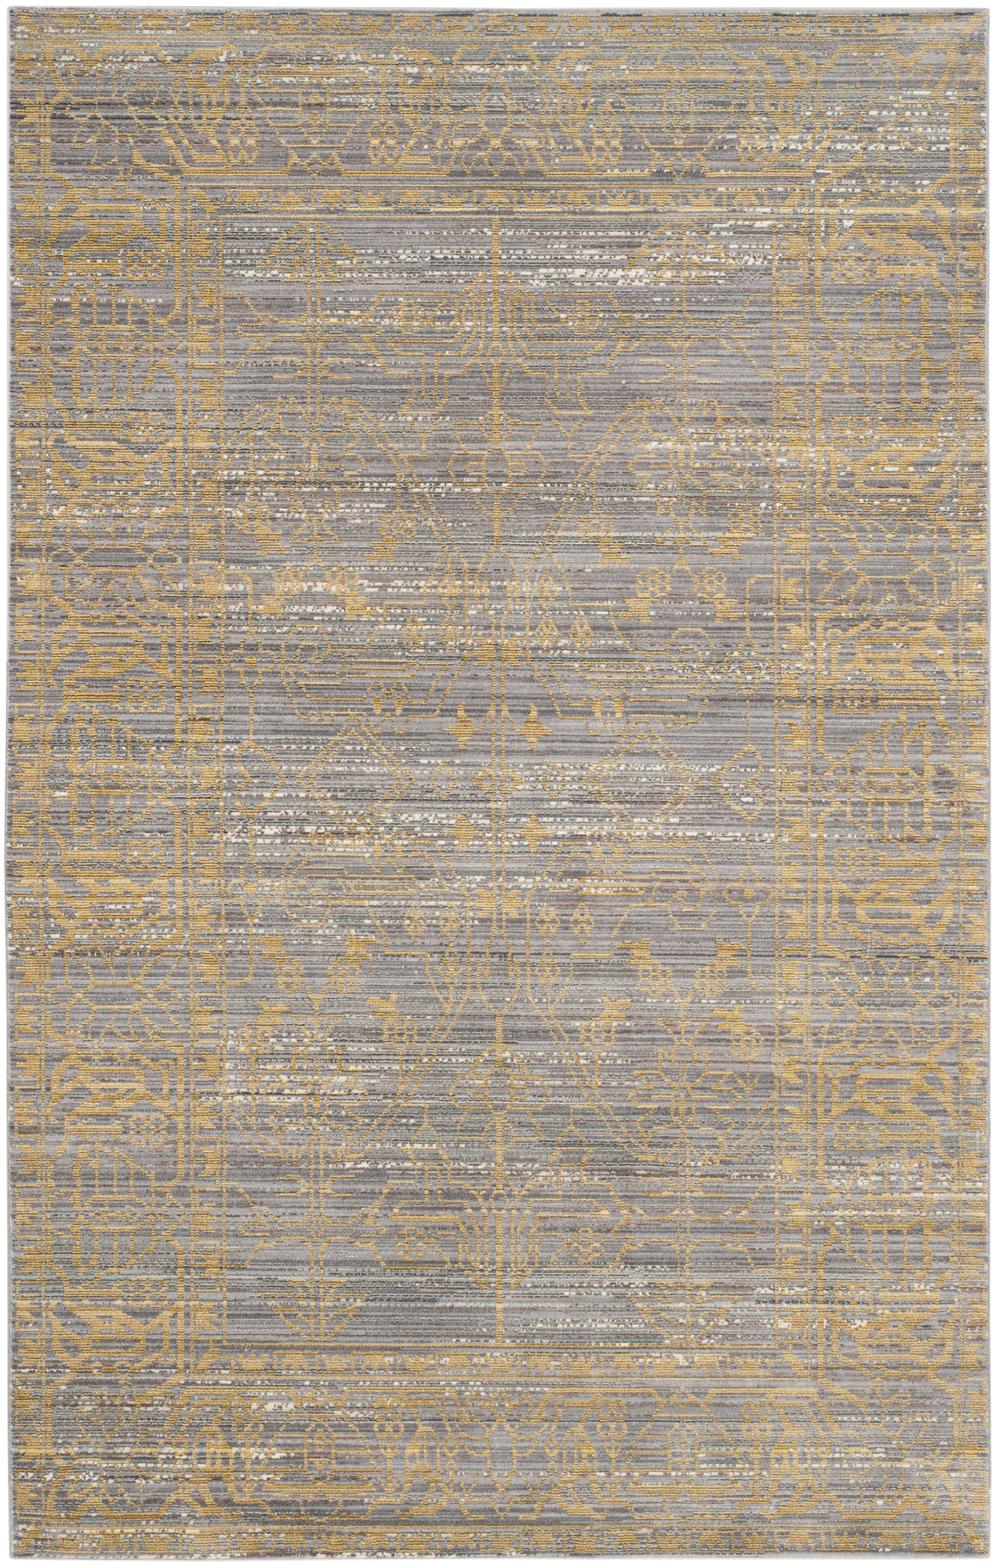 Grey And Gold Living Room Decor: Safavieh Valencia VAL104E Grey And Gold Area Rug